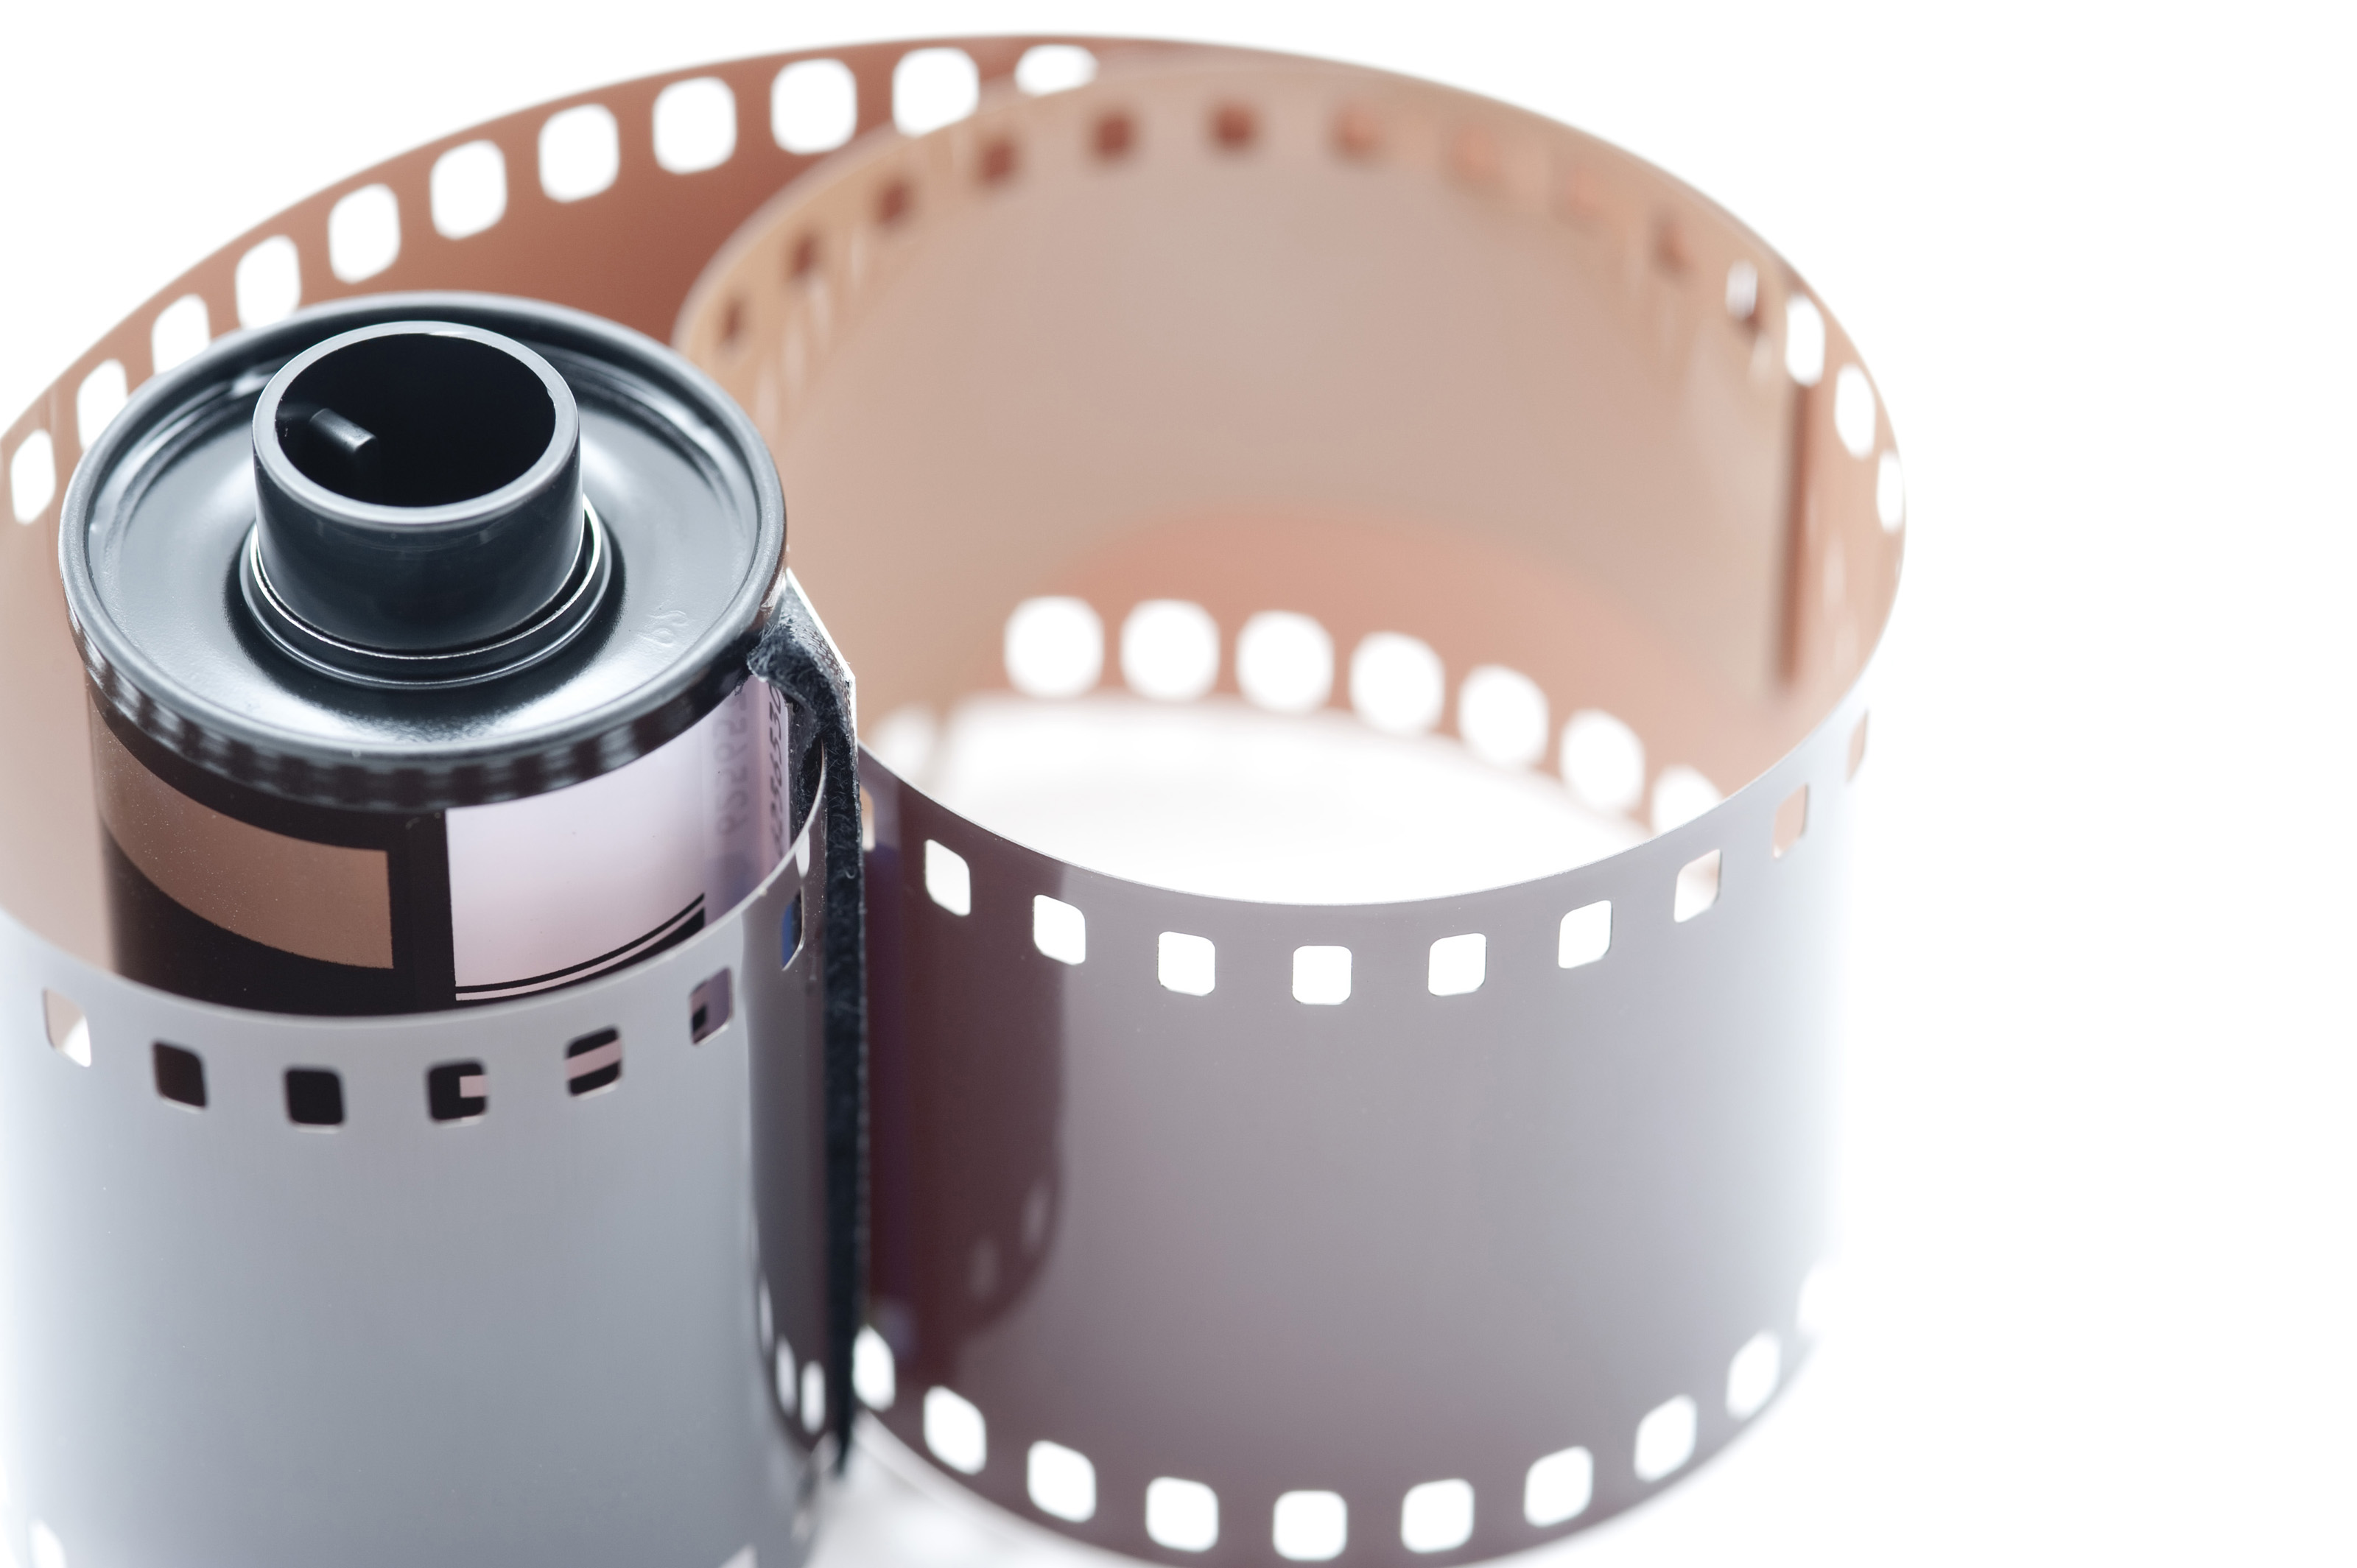 Free Stock Photo 12153 35mm Film Cannister with Exposed Film